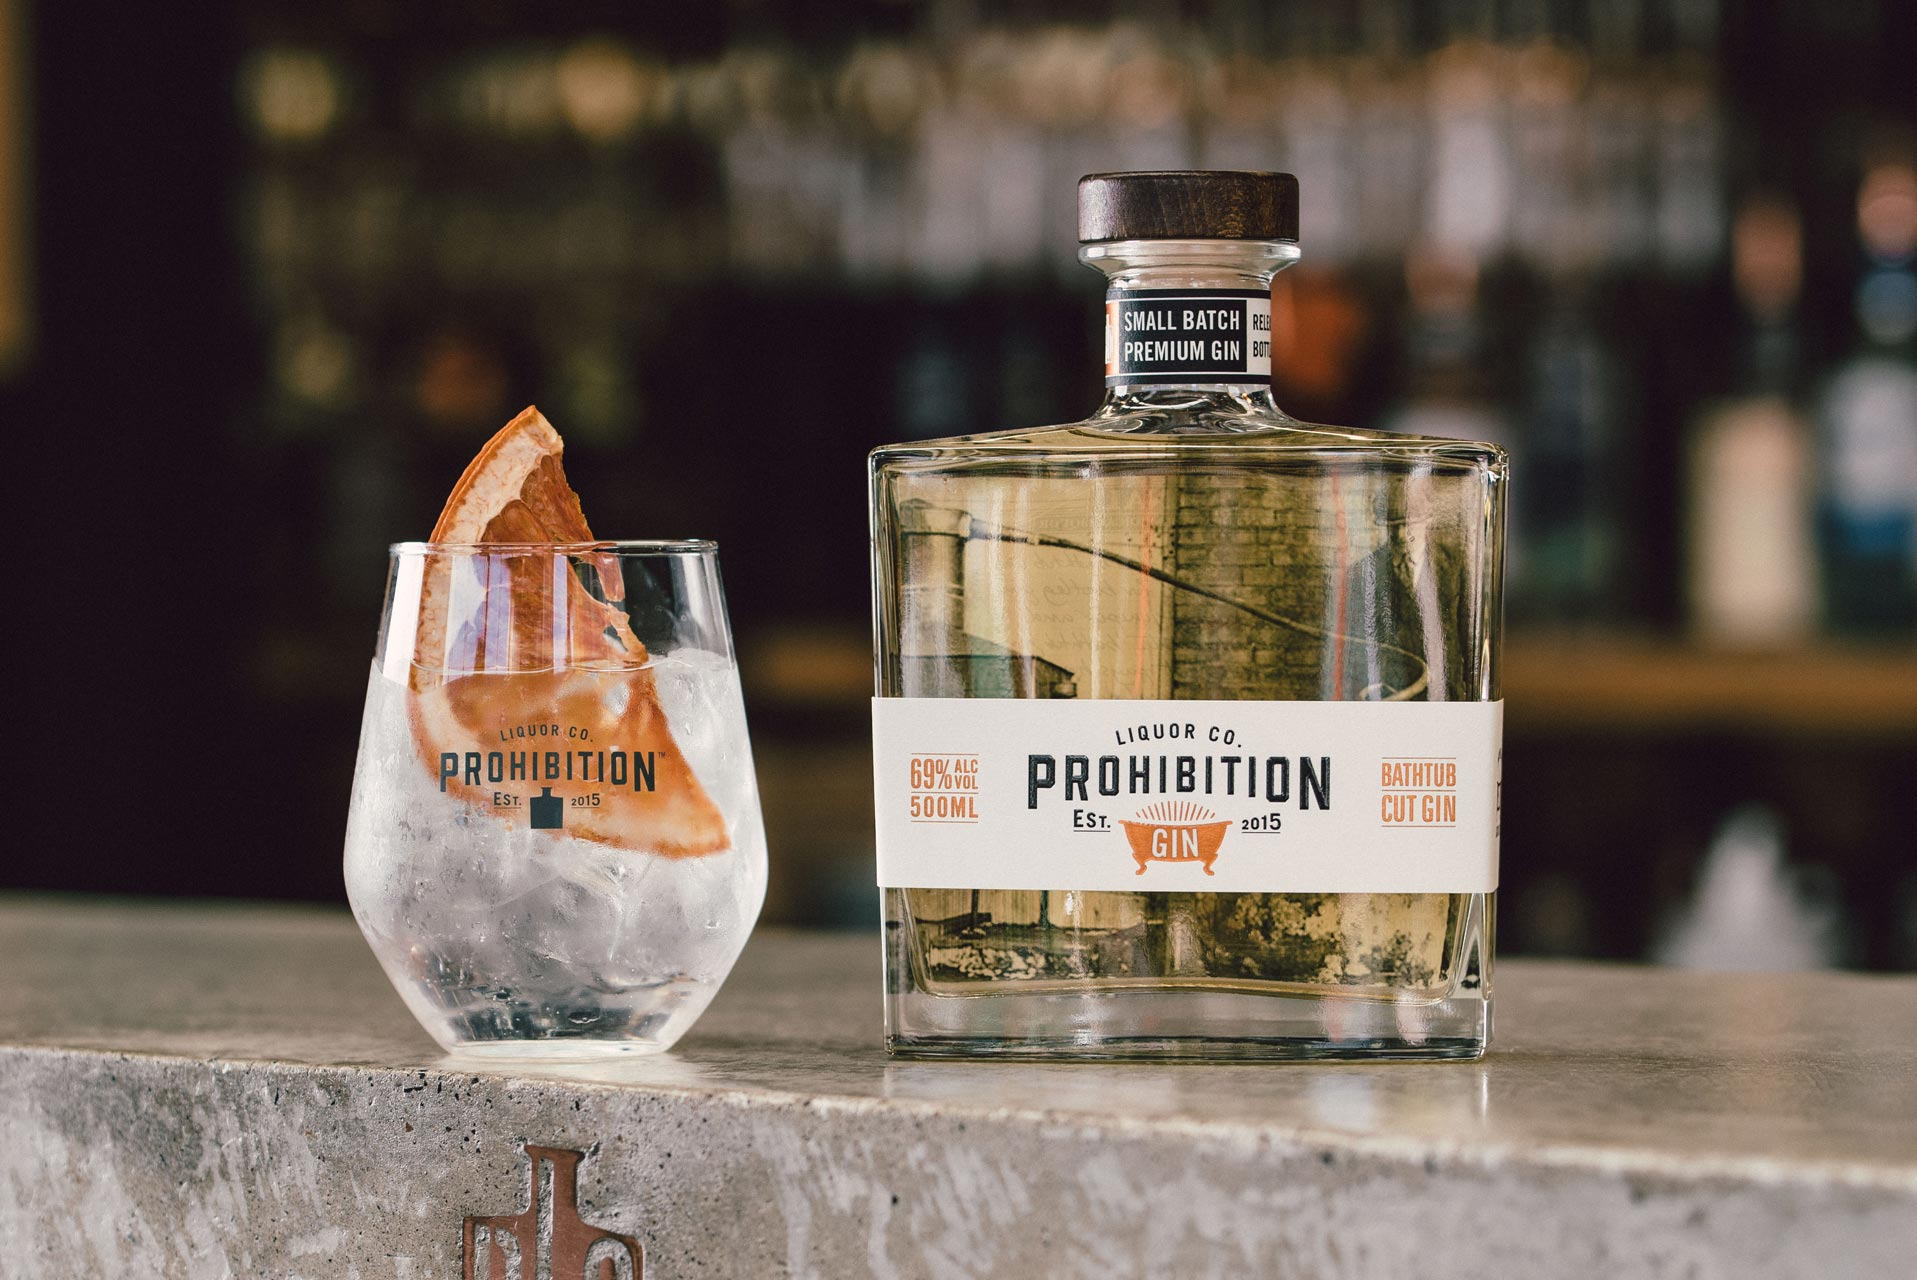 Prohibition Liquor Co Bathtub Cut Gin - Amanda Cartwright